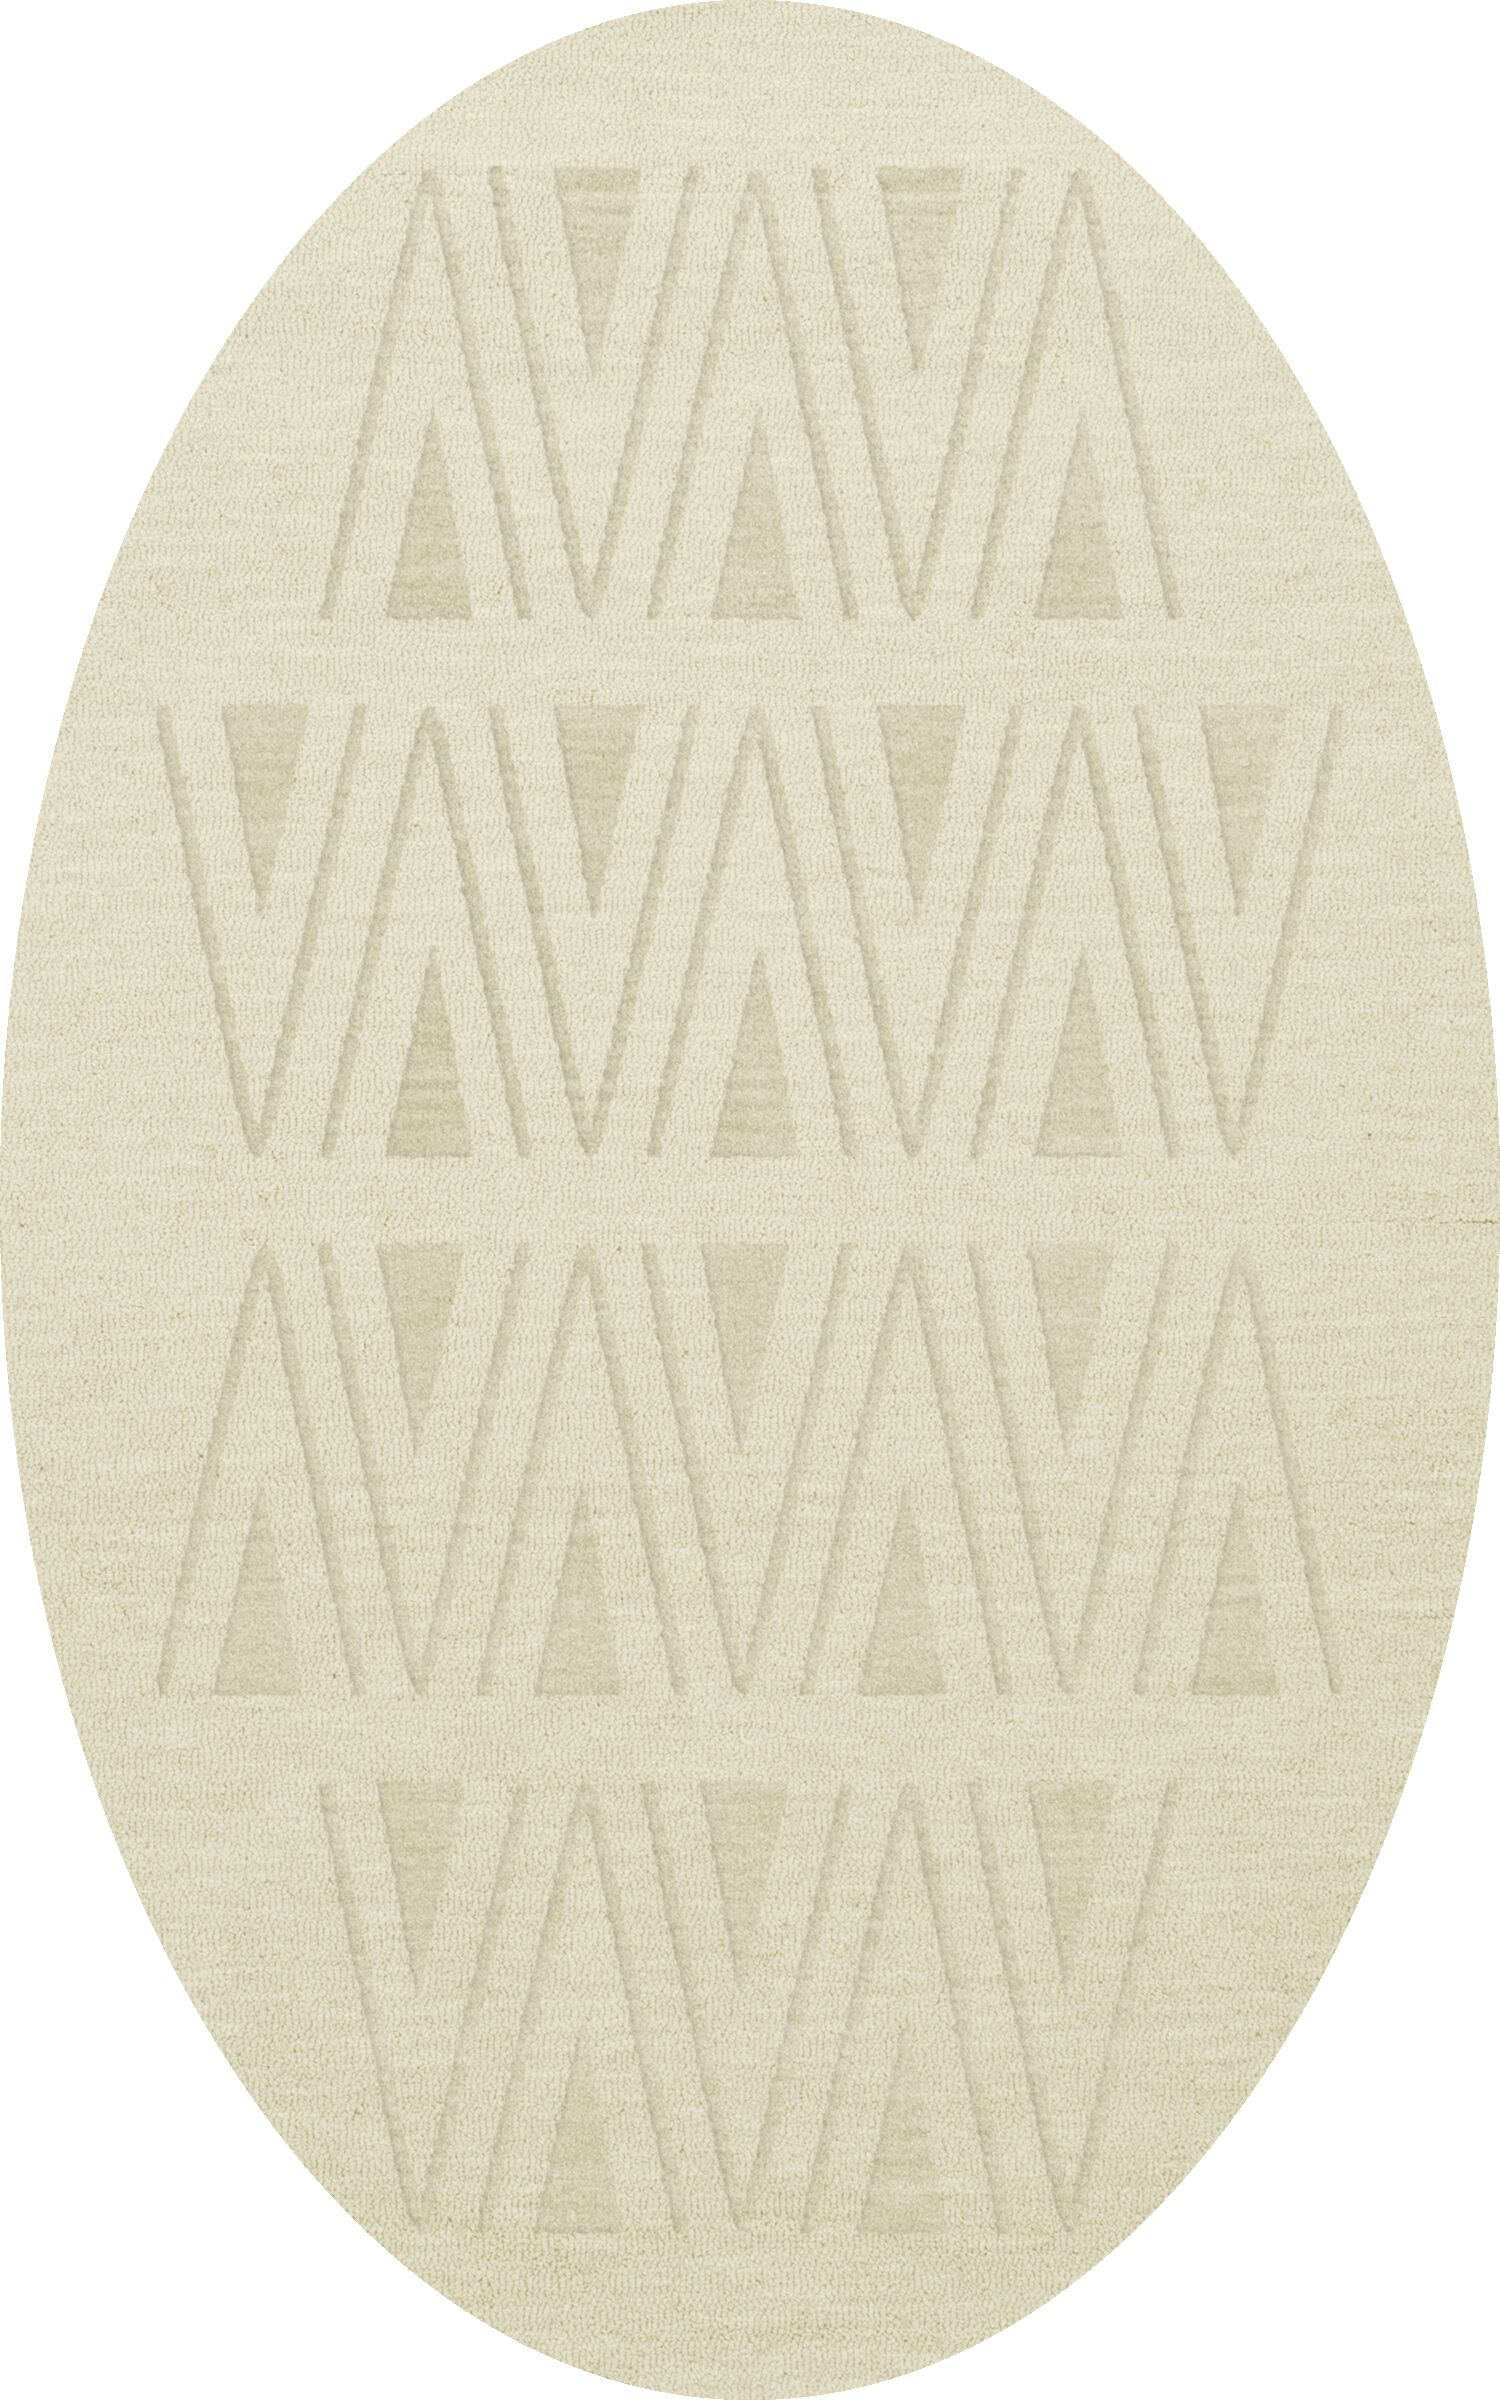 Bella Machine Woven Wool White Area Rug Rug Size: Oval 8' x 10'